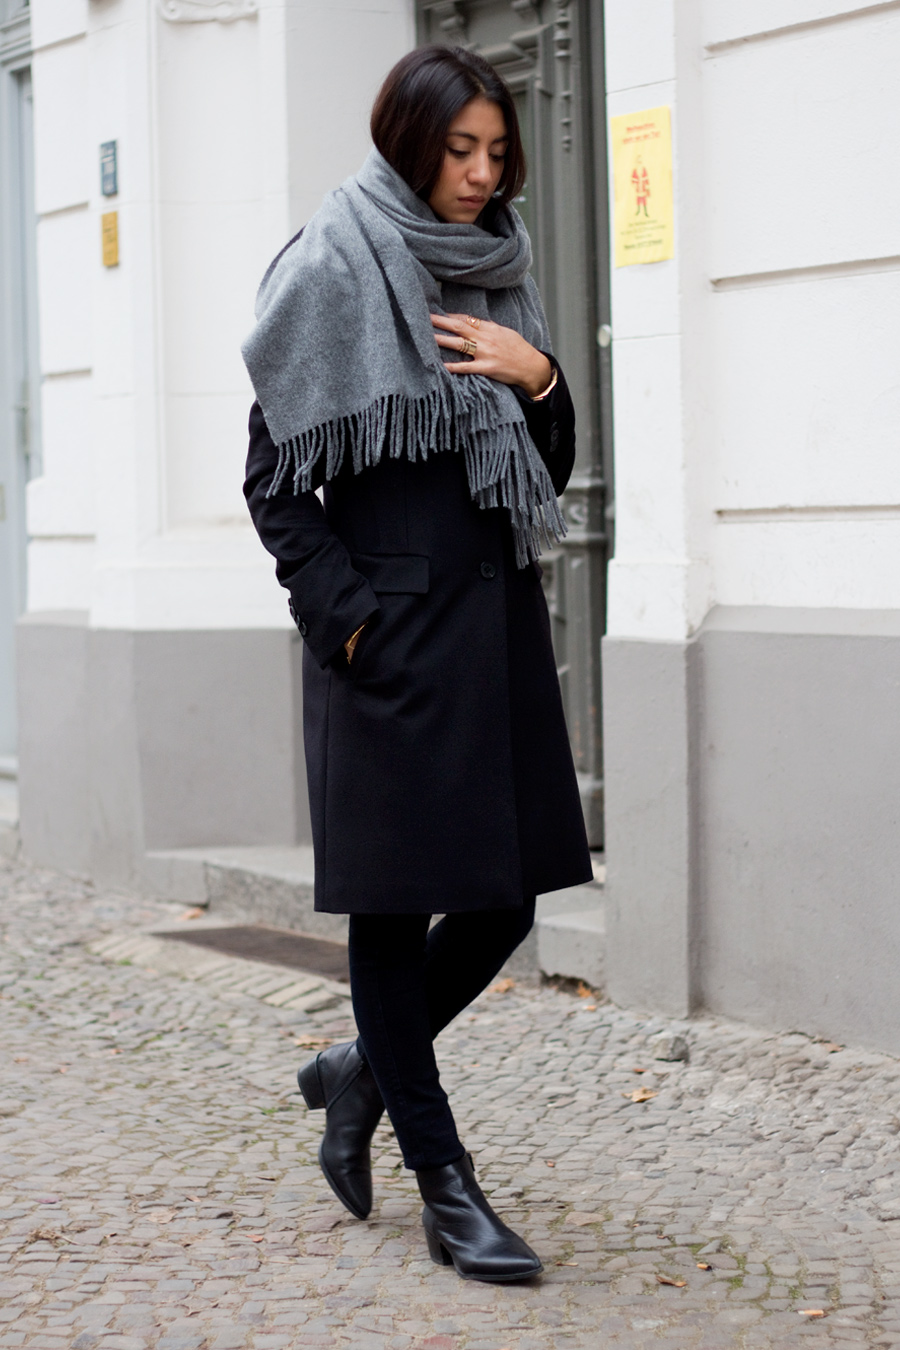 How To Wear The Oversized Scarf Trend | Huge Scarf Outfit Ideas ...